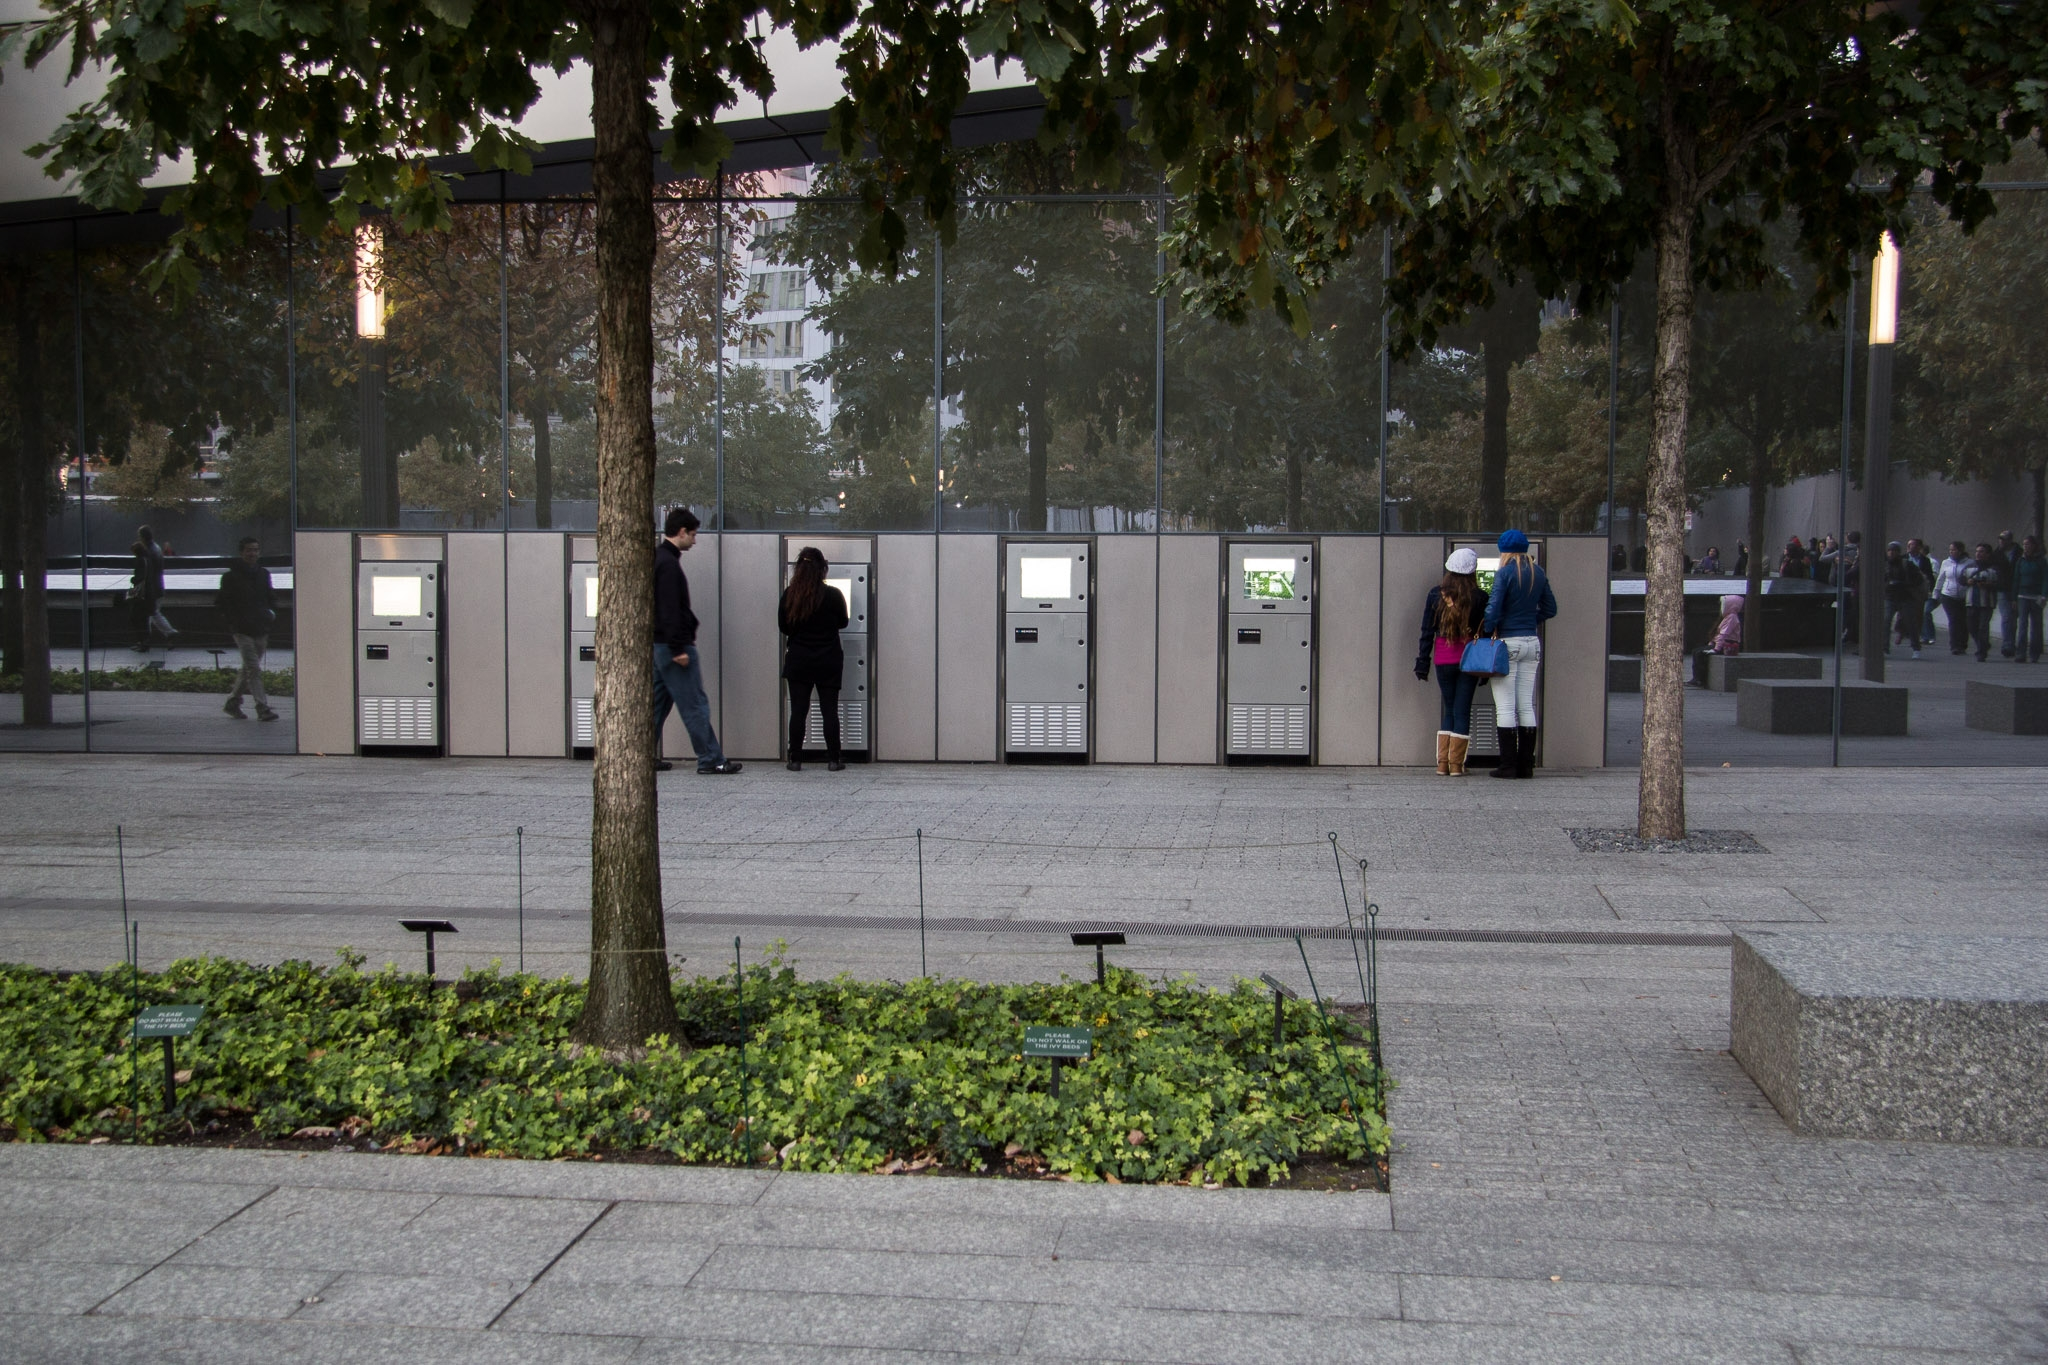 kiosks-at-9/11-world-trade-center-memorial